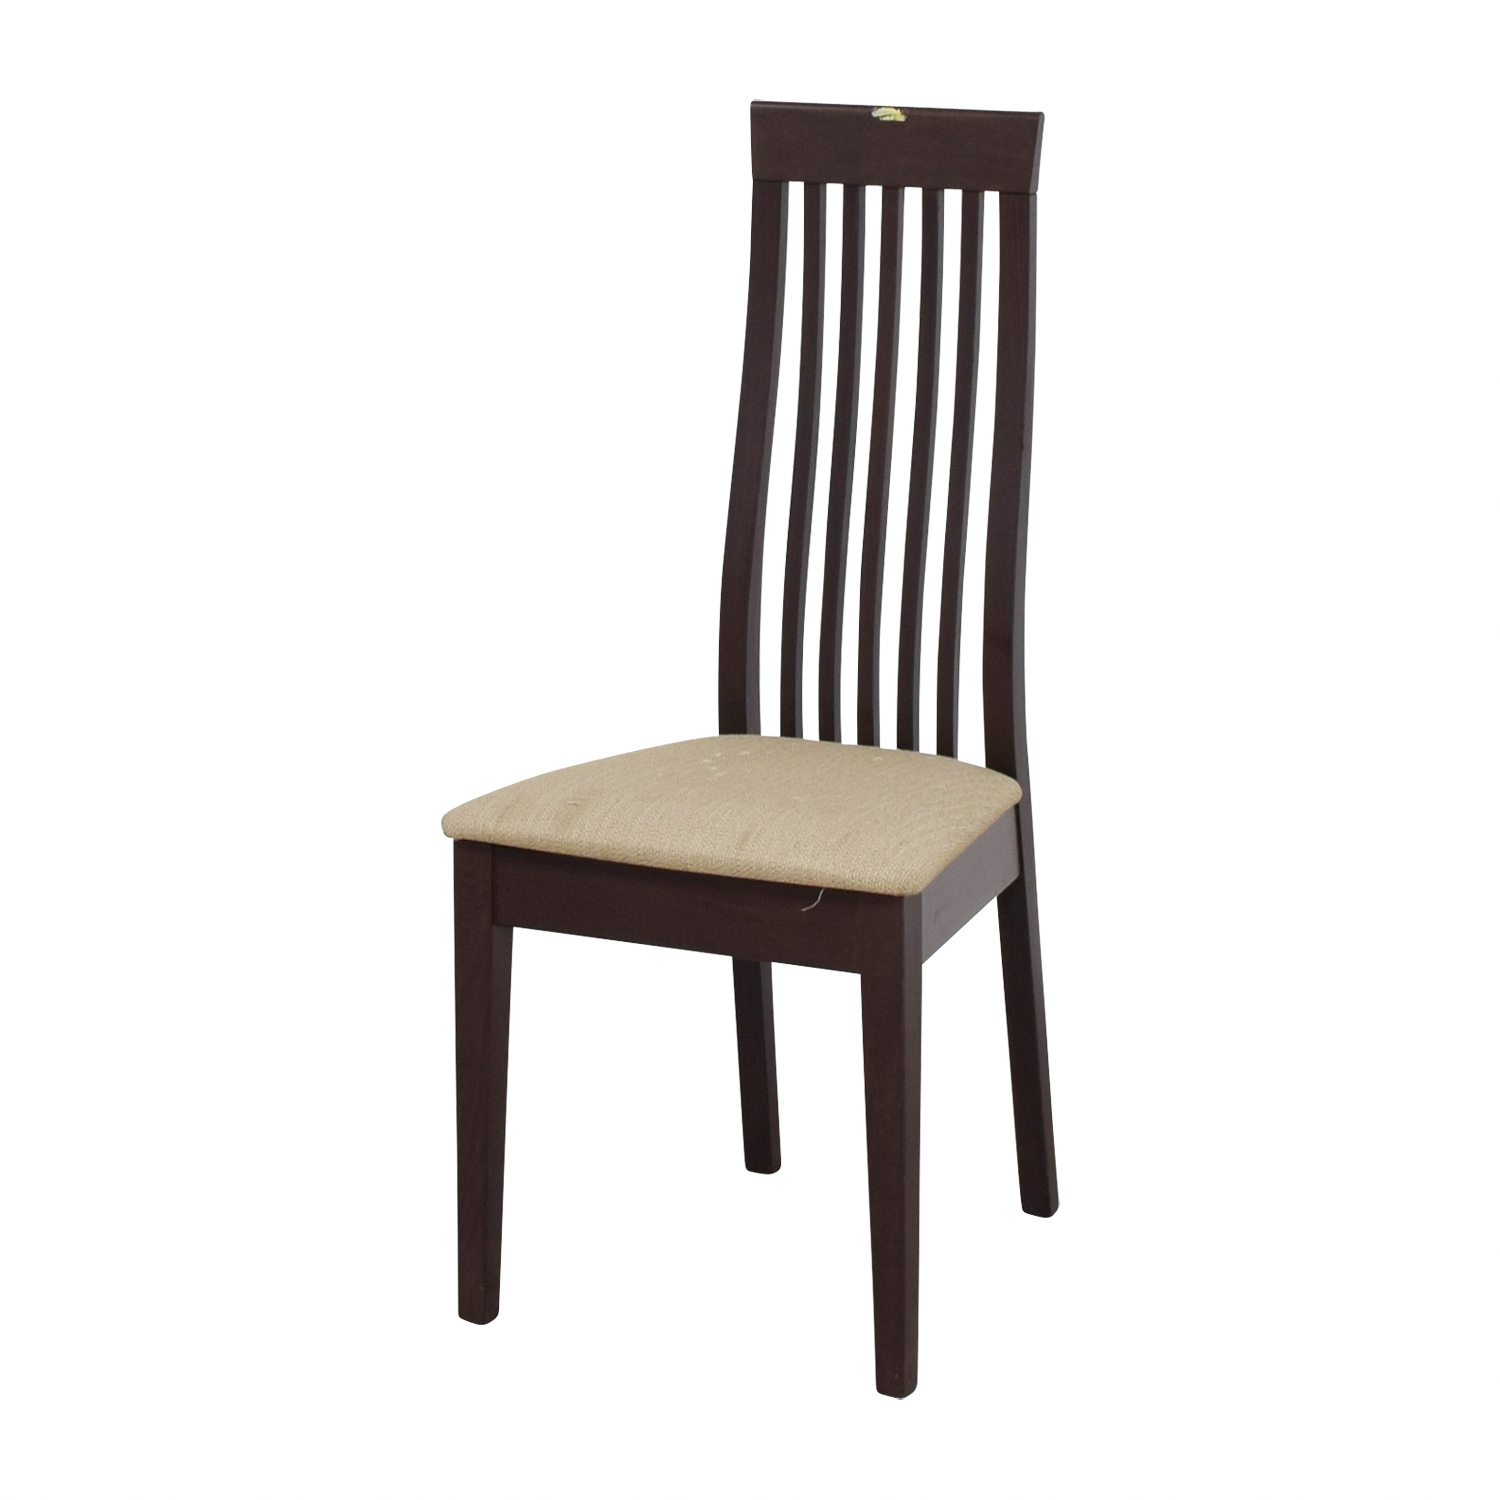 buy Wood Vertical Slat Back with Tan Cushioned Chair online